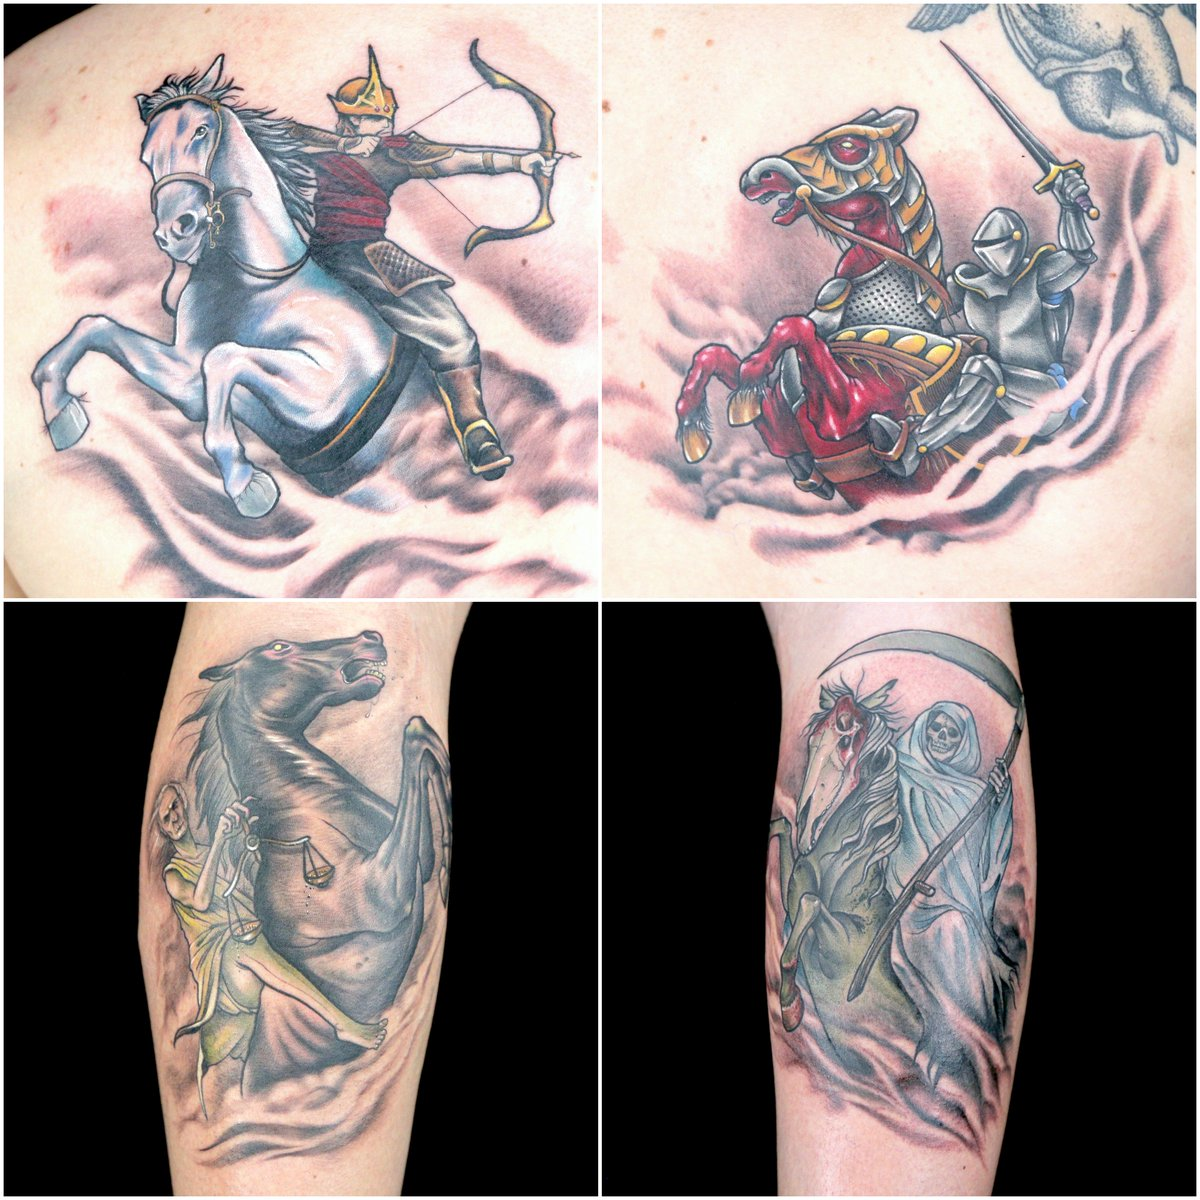 Ink Master On Twitter Which Four Horsemen Do You Think Should Have